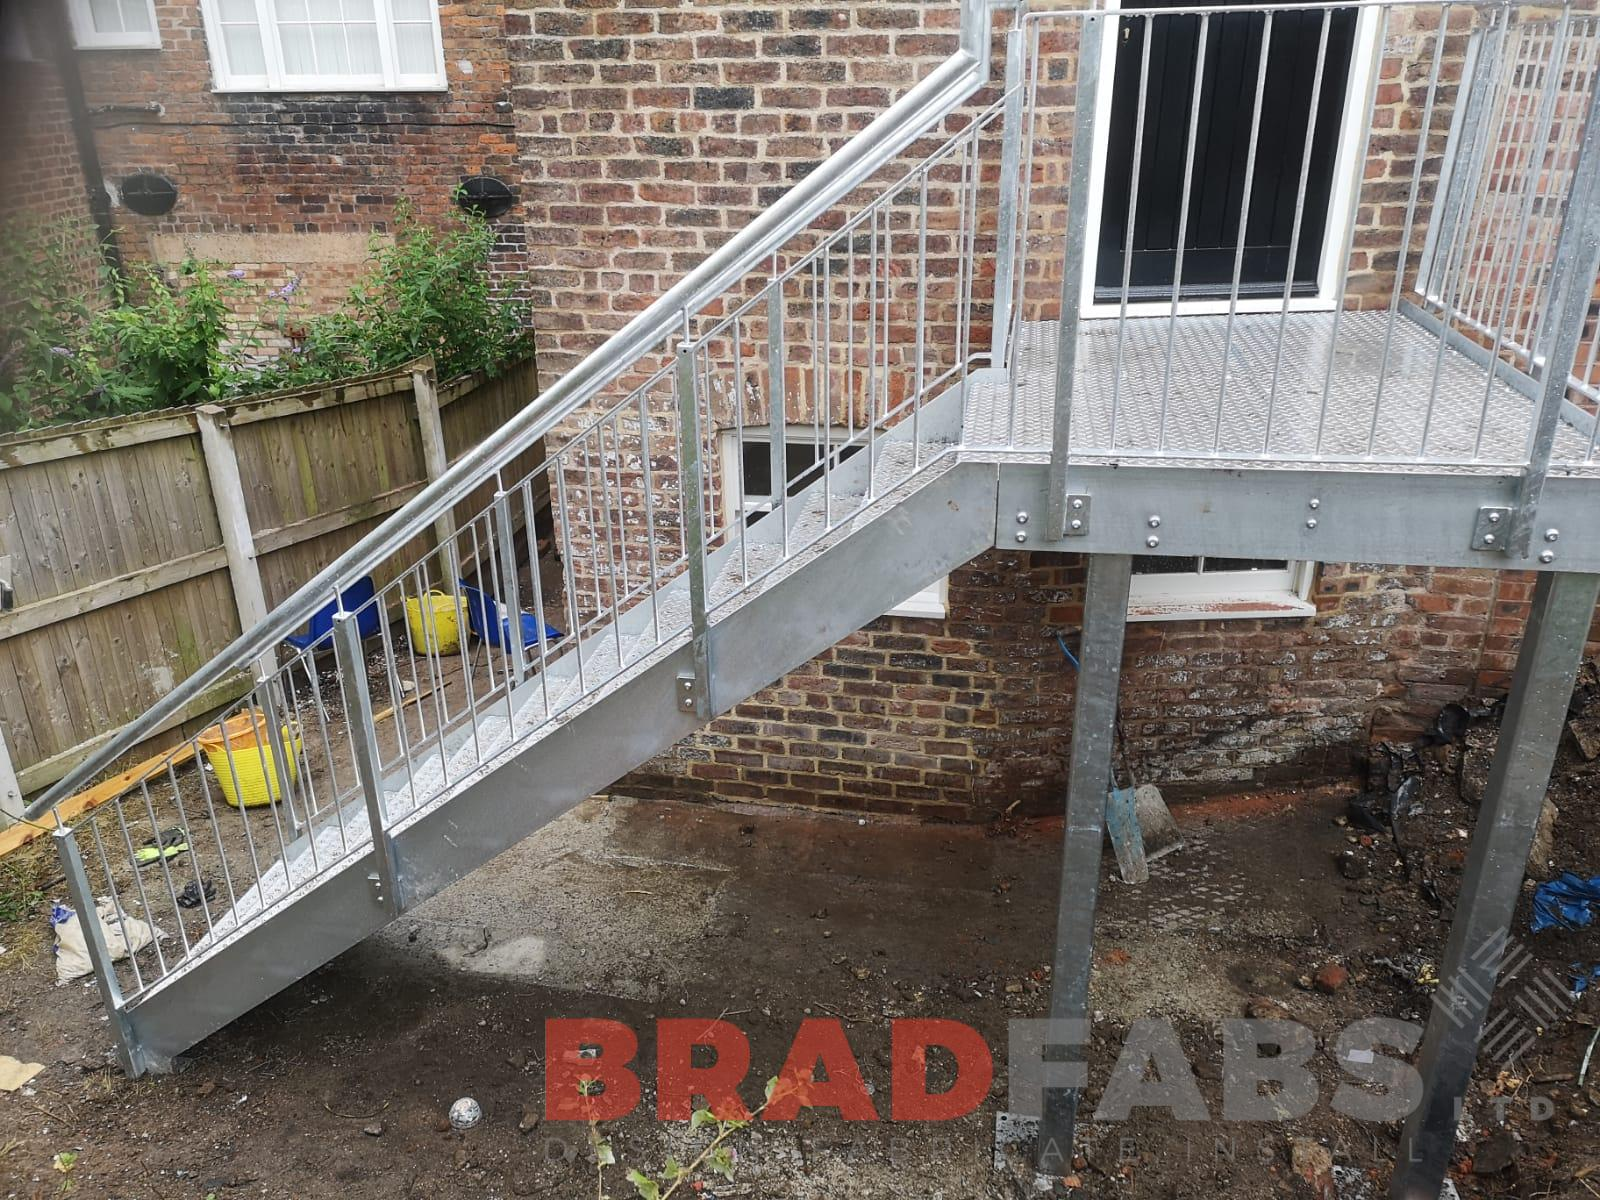 Bradfabs, Straight fire escape complete with durbar treads and vertical bar balustrade